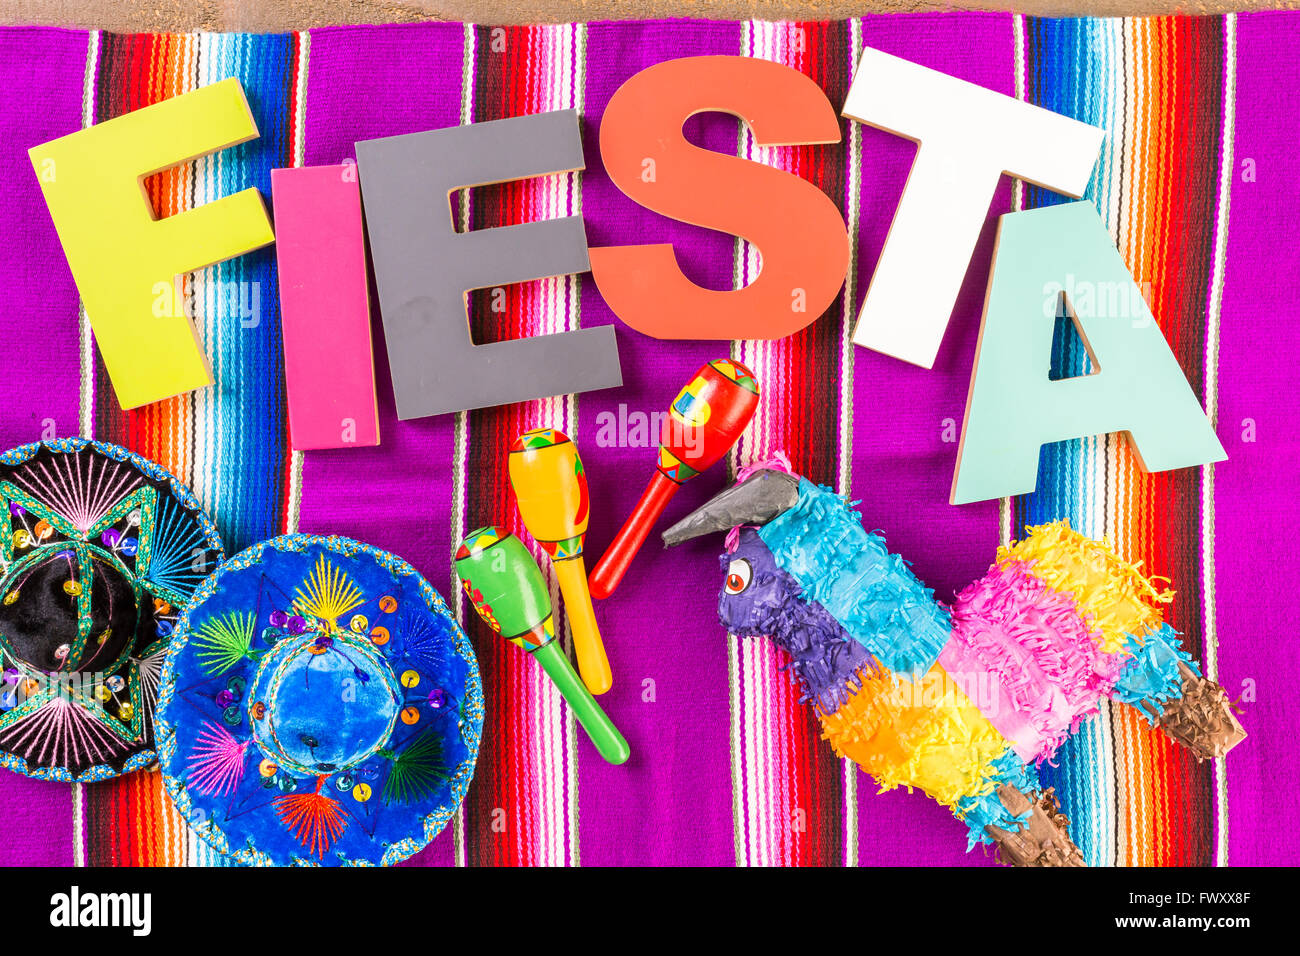 Fiesta Table Decorations Traditional Colorful Table Decorations For Celebrating Fiesta